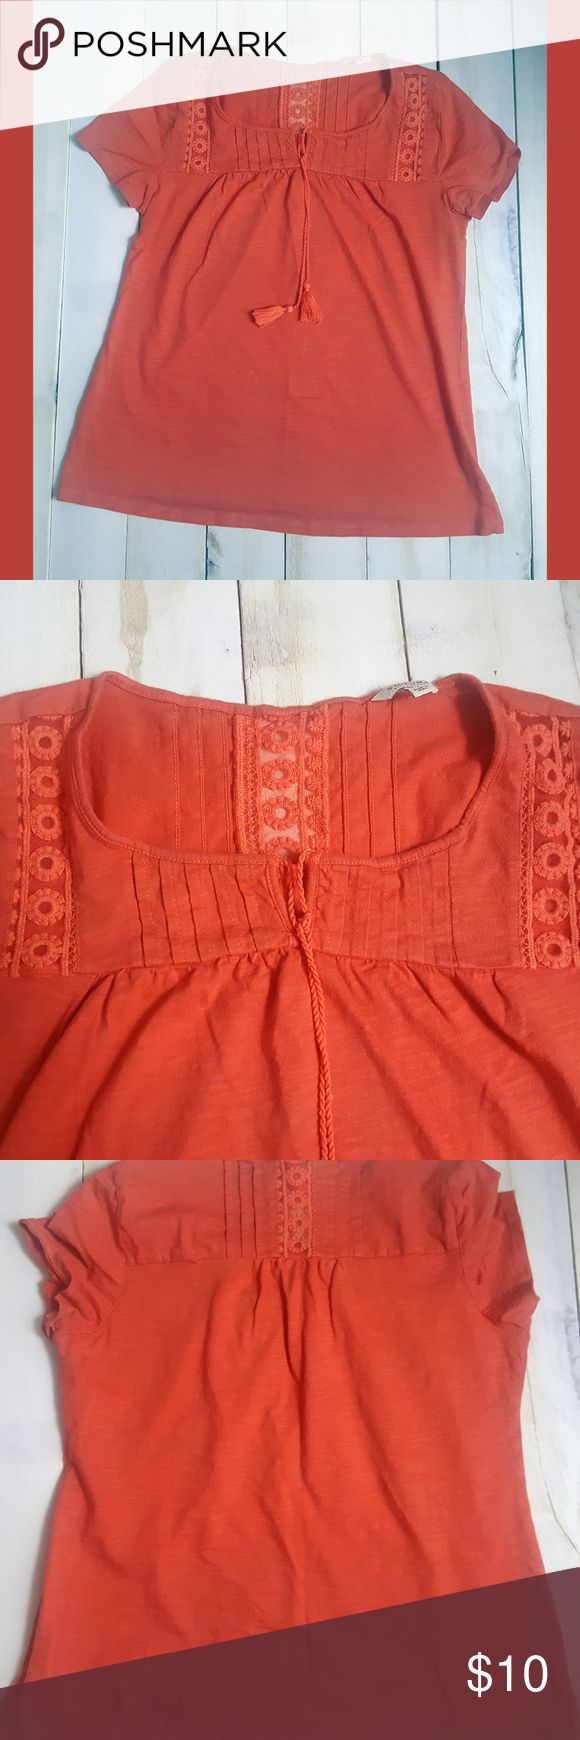 """Sonoma Large Top Ladies Orange Coral Short Sleeve Good overall condition. Size Large.  Chest: 20"""" Length: 23"""" Sonoma Tops Blouses"""